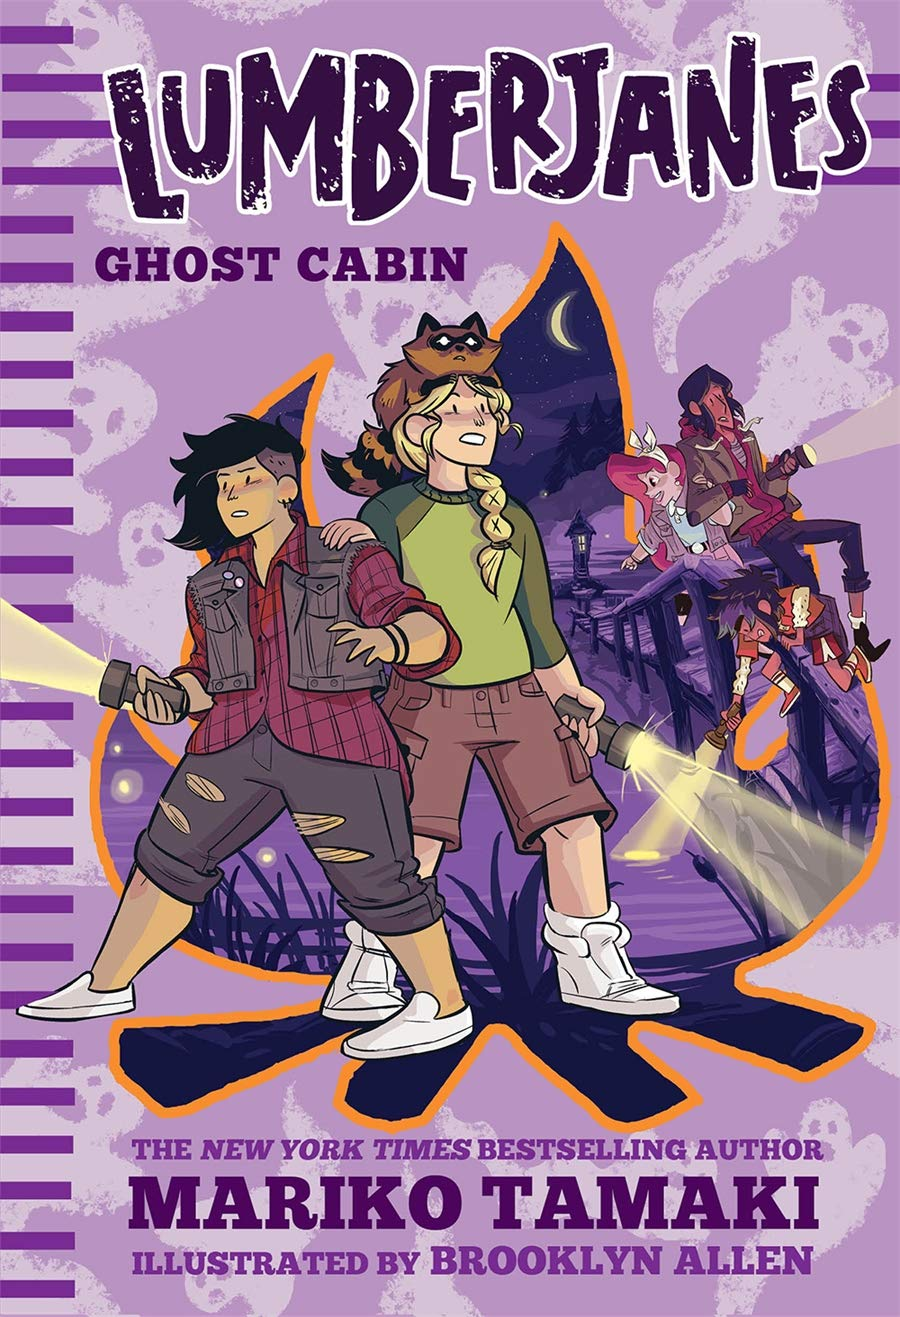 Cover of the Lumberjanes middle-grade novel, Ghost Cabin, by Mariko Tamaki, illustrated by Brooklyn Allen.  The cover is violet, with a pattern of simple white ghosts all over.  They look kind of like thumbprints with bumps for arms and violet eyes and mouths.    In the middle, taking up most of the cover, is a cut-out campfire with a bright orange border.  Inside, as though you're looking through a window, you see a dark purplish lake at nighttime, with a crescent moon shining overhead.  Stepping out of the campfire, on the left side, are two girls facing the viewer.  They're both holding flashlights -- the girl on the left is pointing hers upward while the girl on the right is pointing hers down.  The first girl has a partially shaved head, with the rest of her wavy black hair flopping over the right side of her head.  She's wearing a red plaid long-sleeved top and a grey vest over ripped grey capris and white slip-on flat shoes.  The other girl has a long blond braid draped over her left shoulder.  She has a spooked-looking brown raccoon on her head and is wearing a two-toned green long-sleeved shirt with a bright green torso and darker green sleeves.  She's also wearing knee-length dark brown cargo shorts and white high-top sneakers.  On the upper right side of the campfire are three other girls, shrunk to a smaller size because they're not the stars of this book.  There's Jo, with the shoulder-length dark brown hair; April, with the white bow in her long red hair; and Ripley, with the blue streak in her short, spiky dark brown hair.  They're all holding flashlights and looking around with scared and/or fascinated expressions.